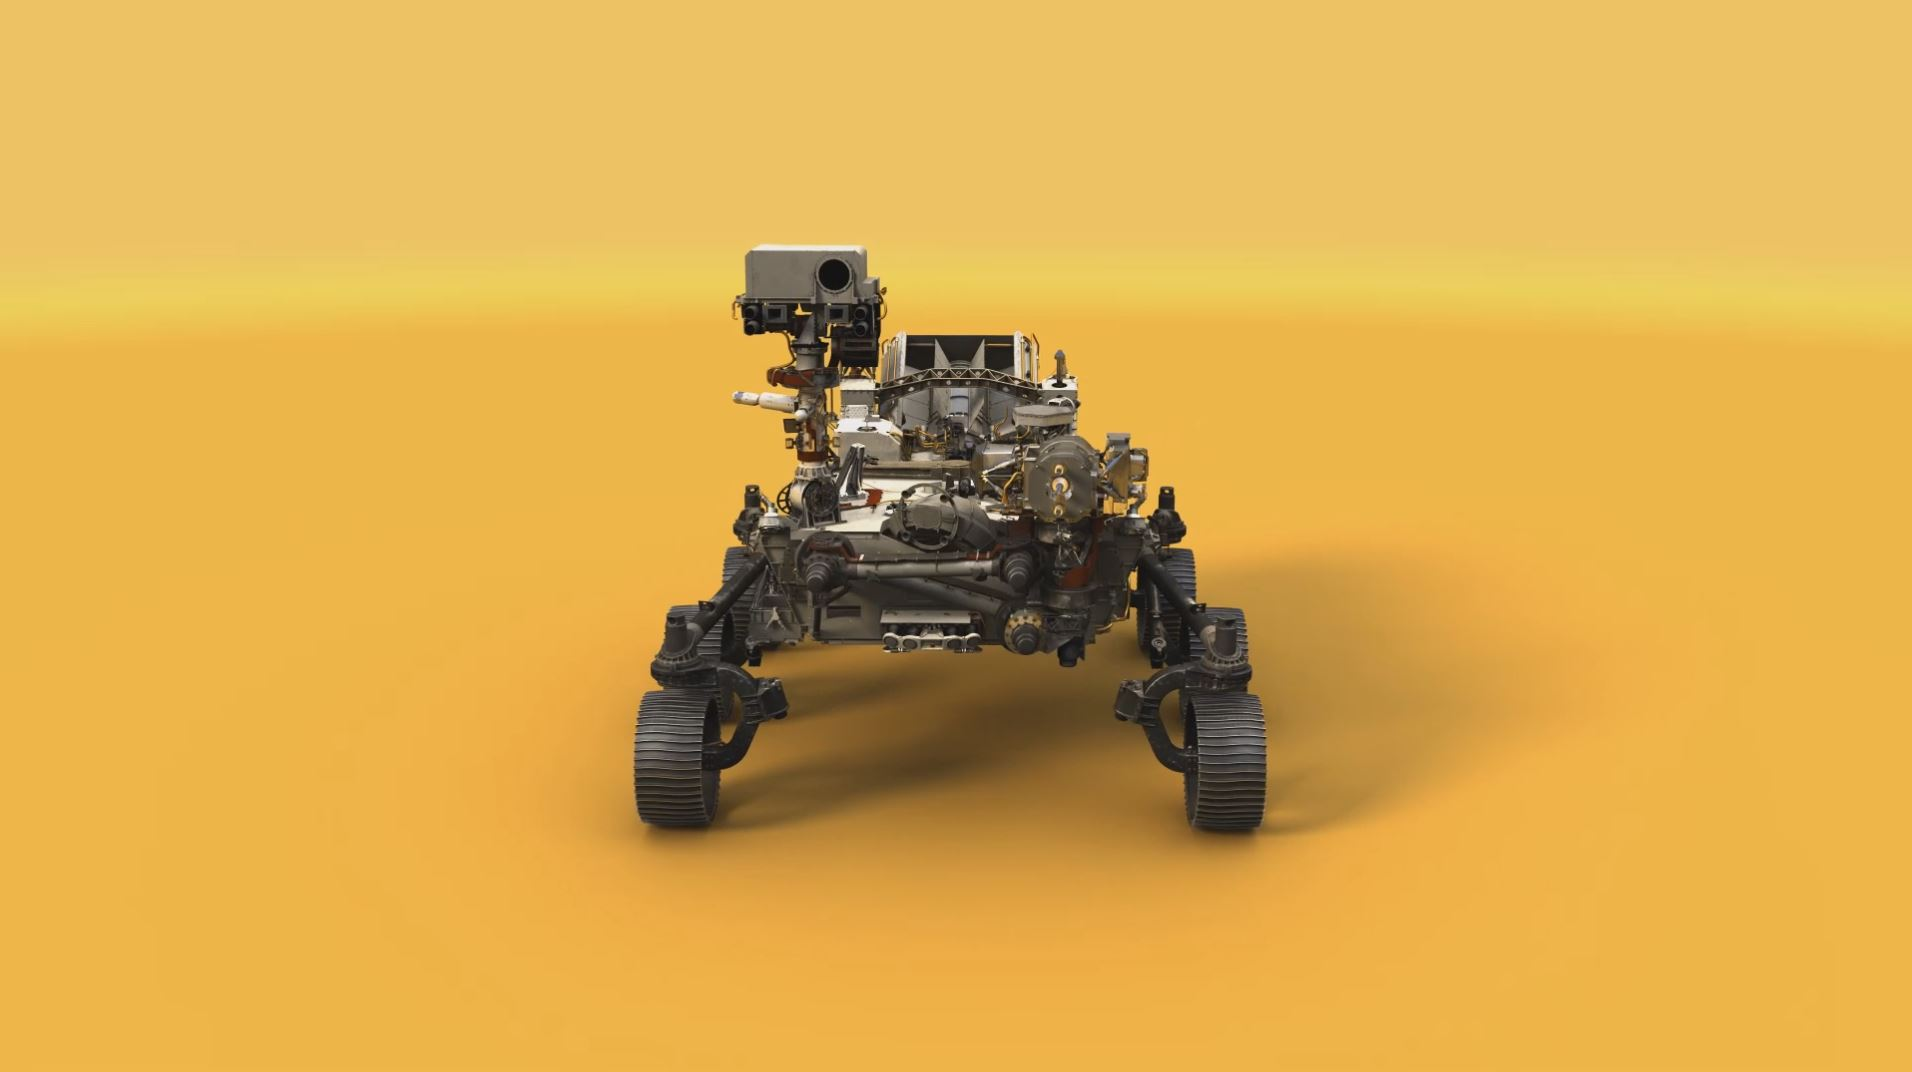 see the image 'Mars 2020 Rover Model Video'